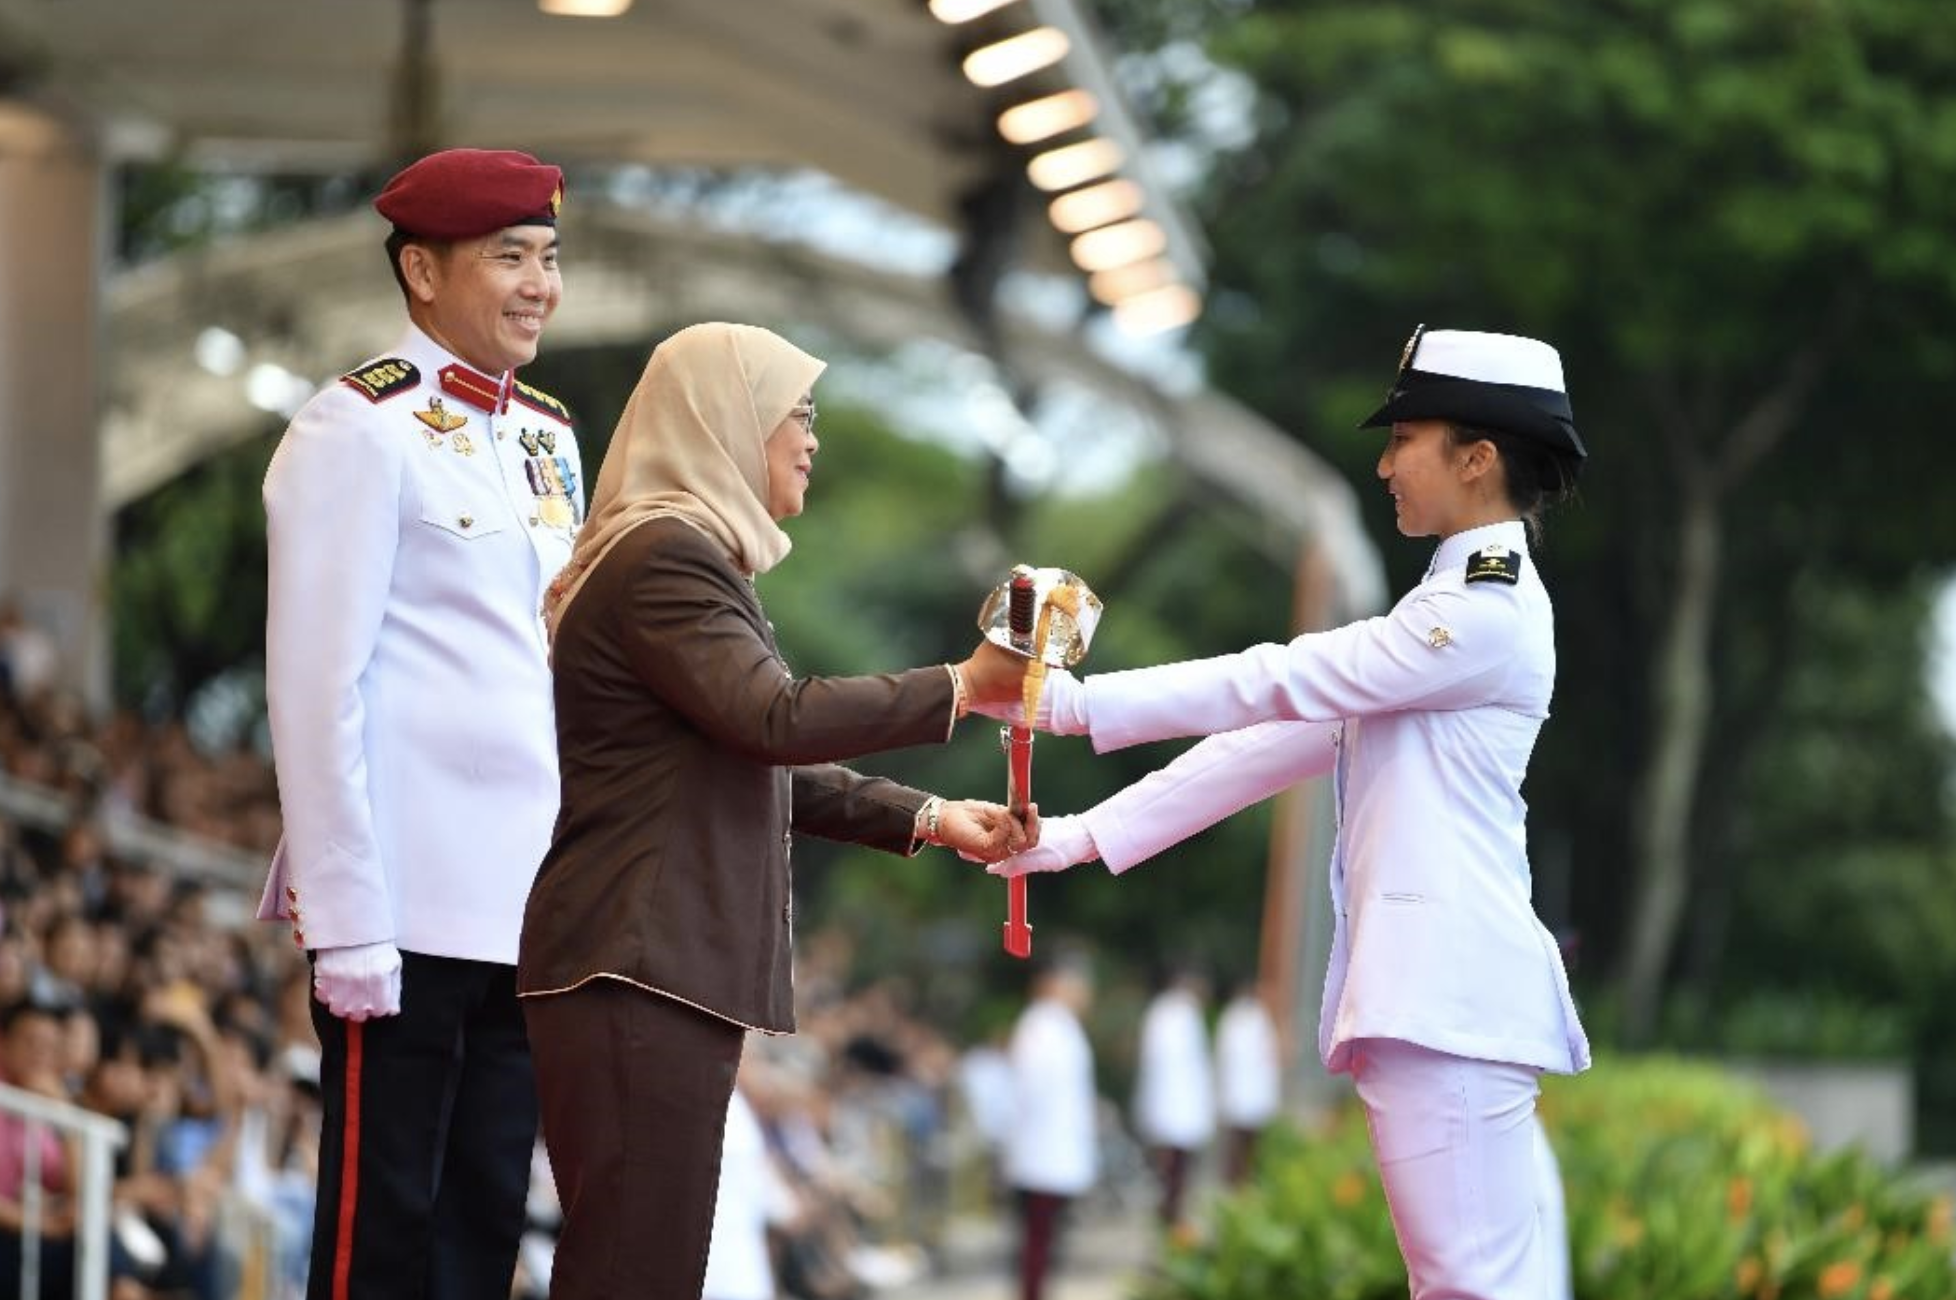 President Halimah Yacob presenting the Sword of Honour to Midshipman (MID) Allison Tan from the Republic of Singapore Navy. Photo courtesy: Mindef